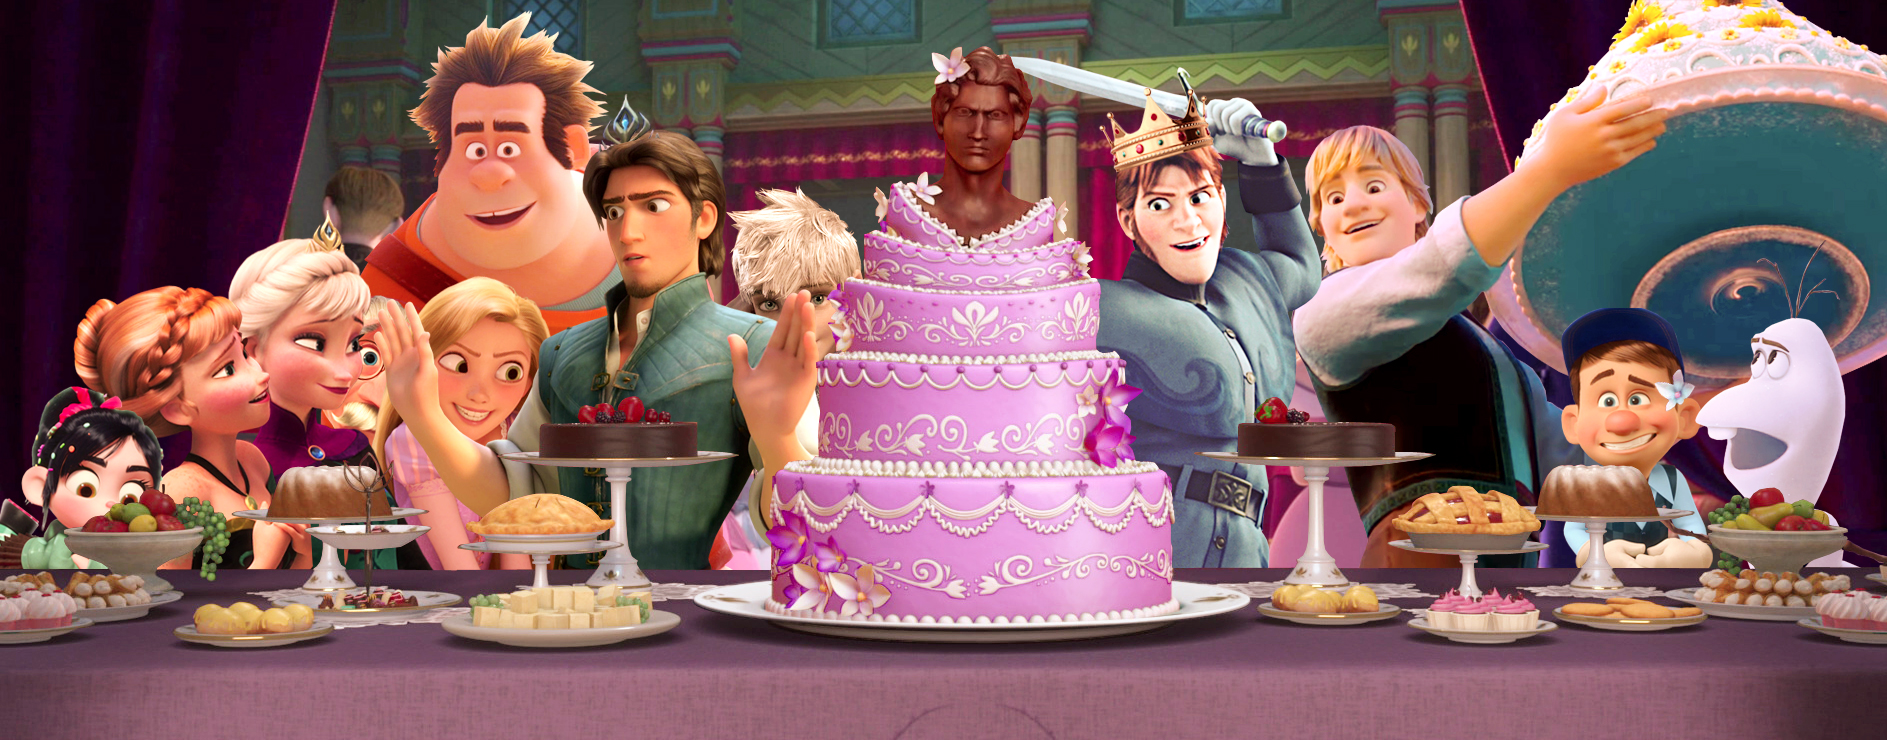 Annas Birthday Party Frozen Fever by Simmeh on DeviantArt